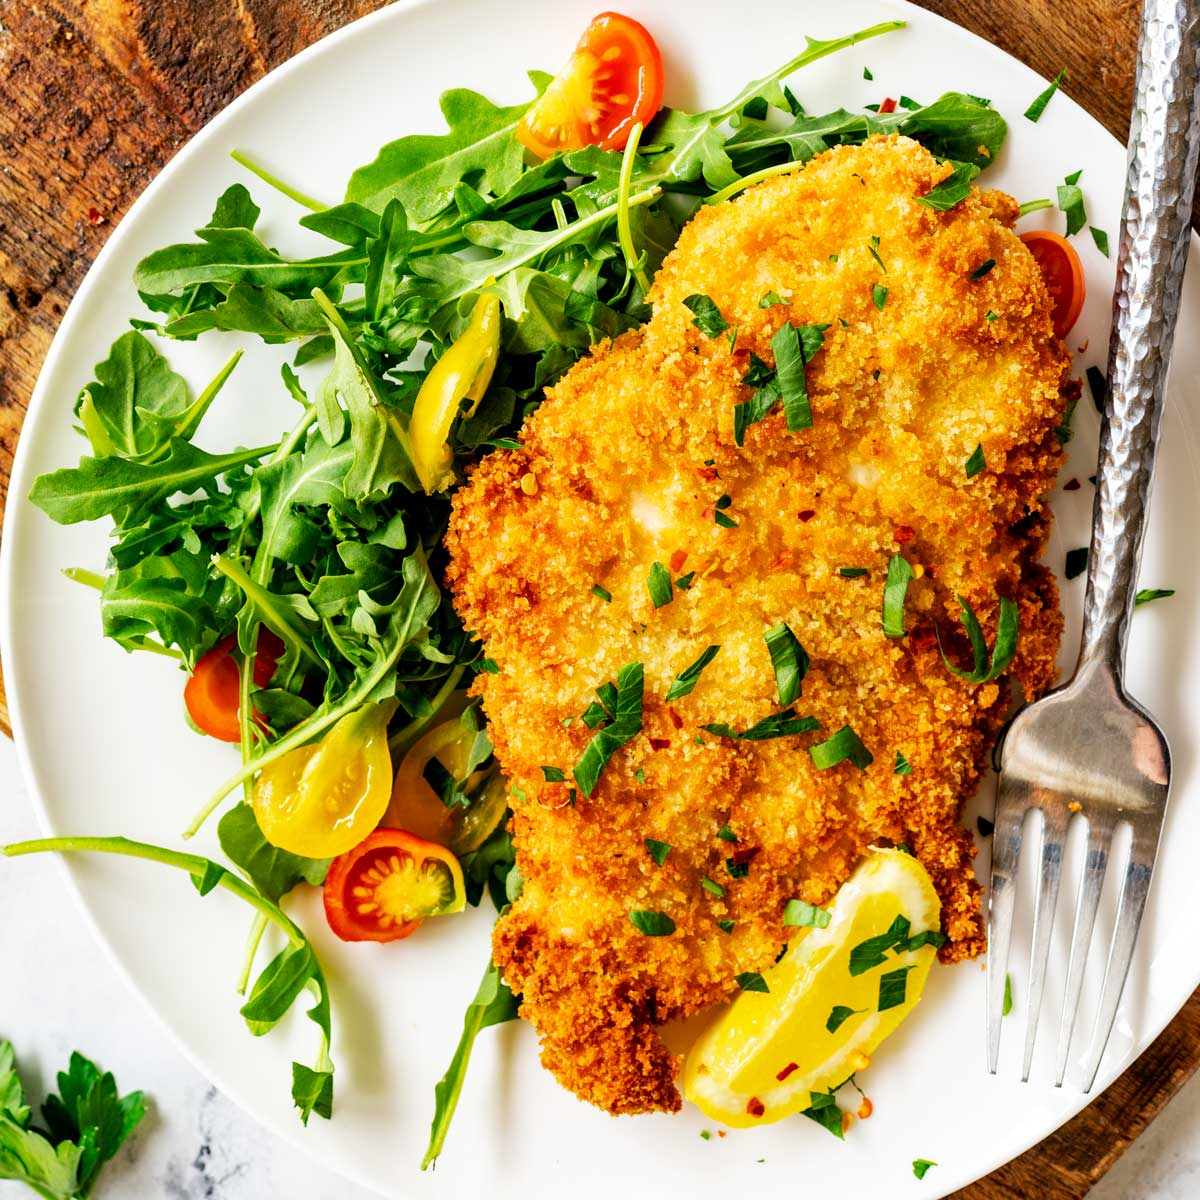 Square overhead photo of a white plate with air fryer chicken cutlets and and salad on a dark cutting board.